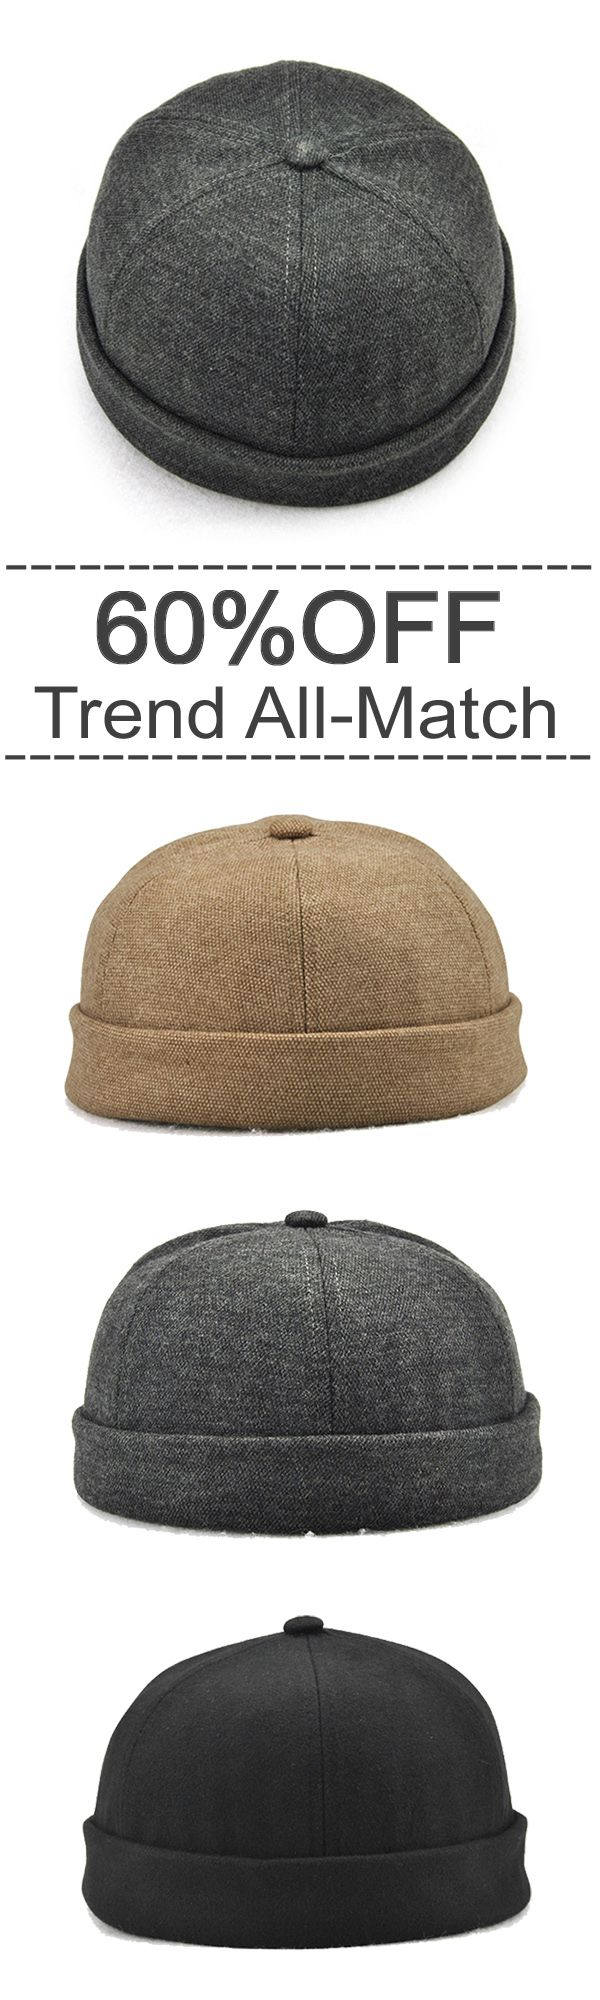 60%OFF&Free shipping. Trend All-Match, Vintage Solid Skullcap, Sailor Cap, Warm Rolled Cuff Bucket Cap. Colors: Black, Grey, Blue, Beige. Shop now~